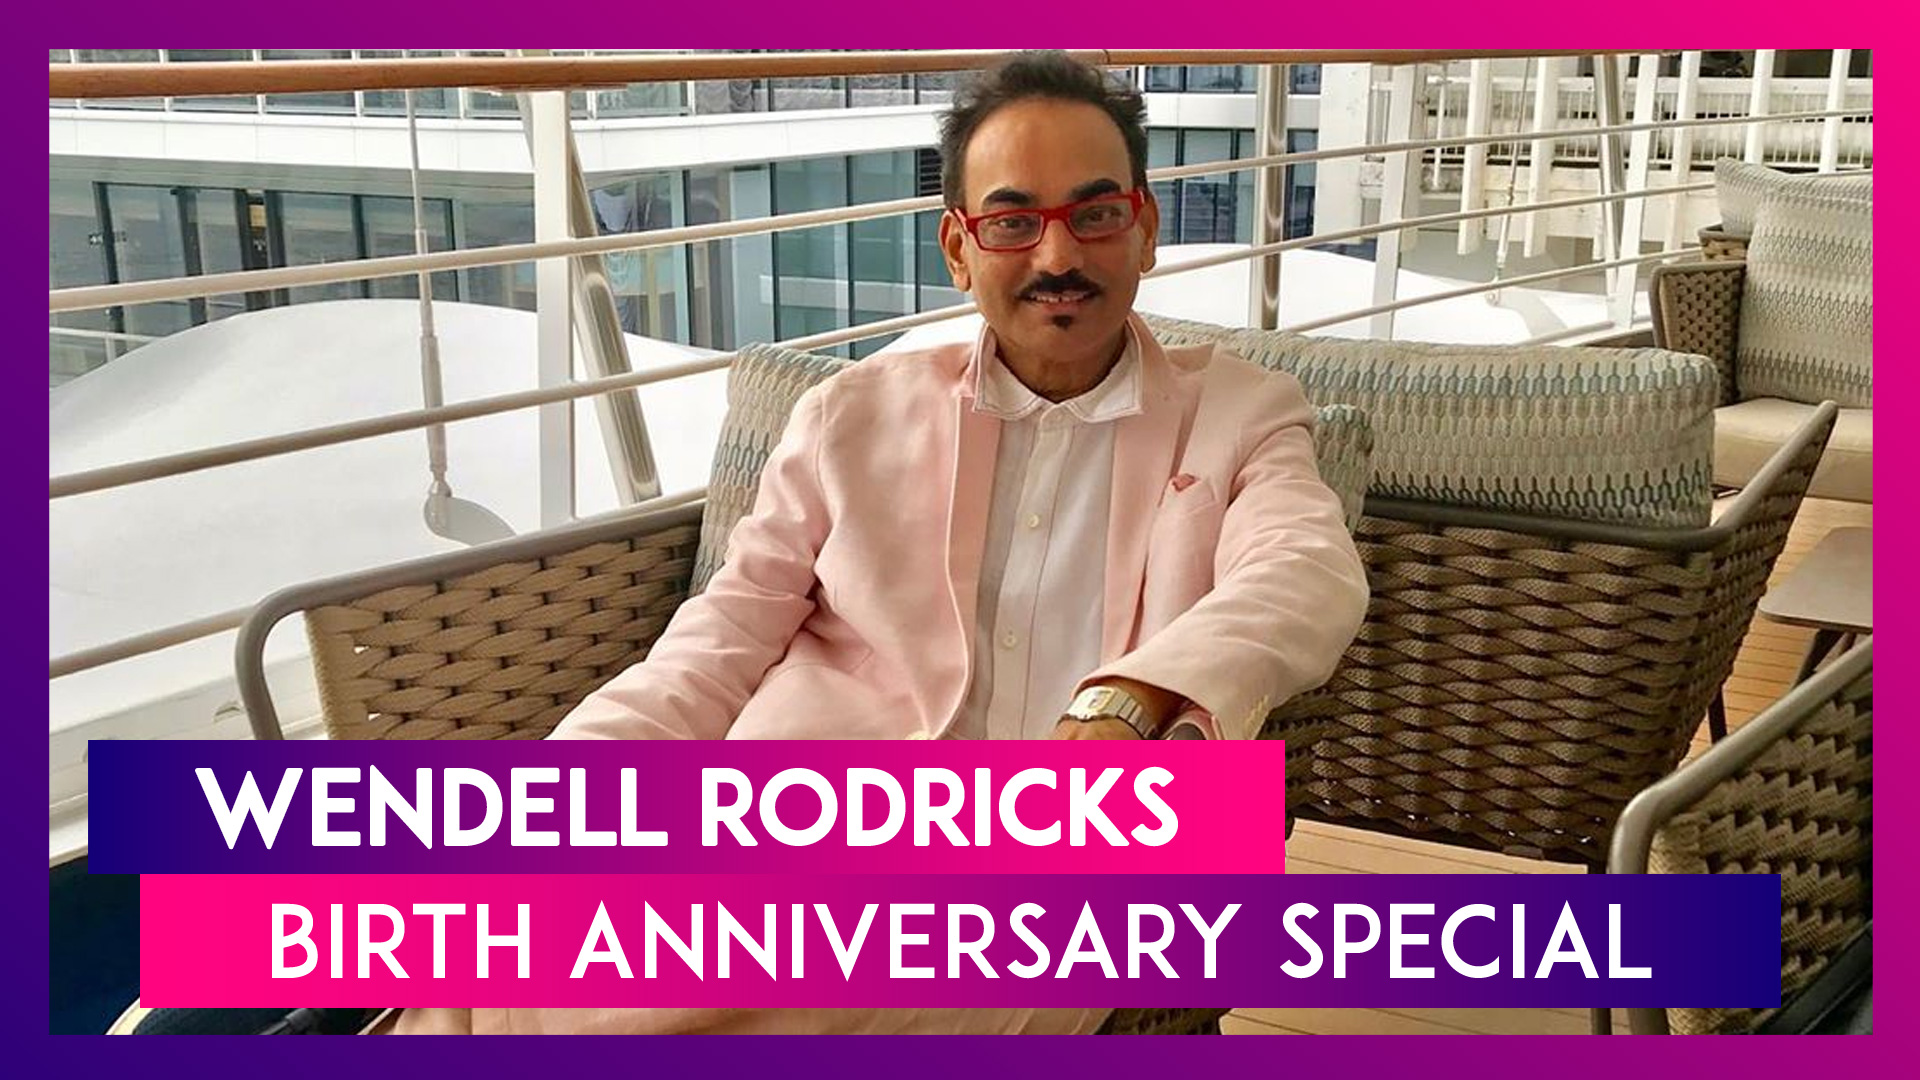 Wendell Rodricks Birth Anniversary Special: All The Bollywood Beauties Who Walked The Ramp For Him